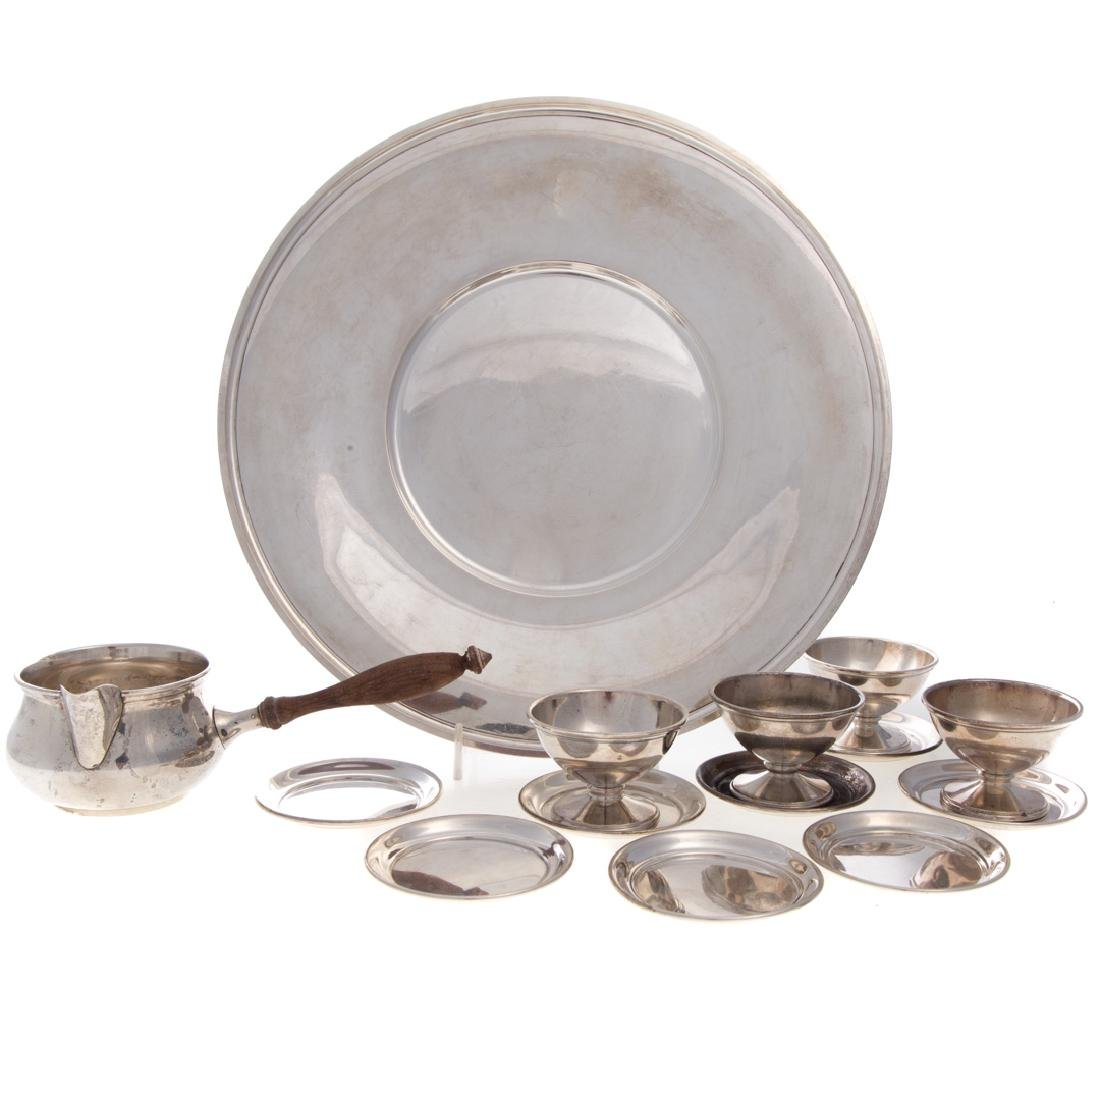 Collection Kirk sterling tableware